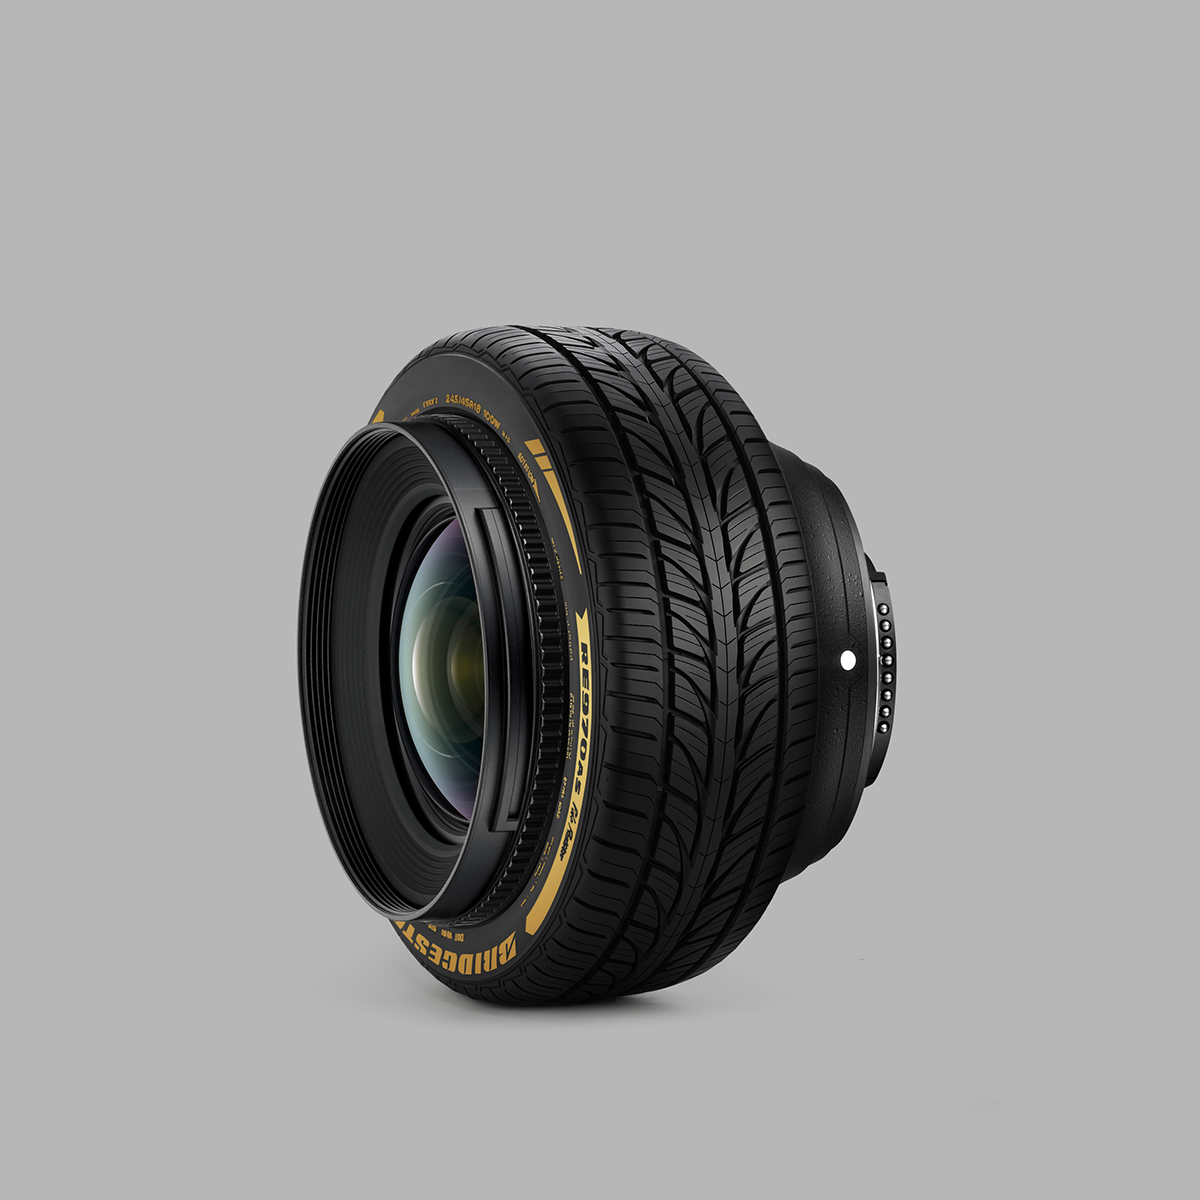 camera lens tire photo montage photoshop